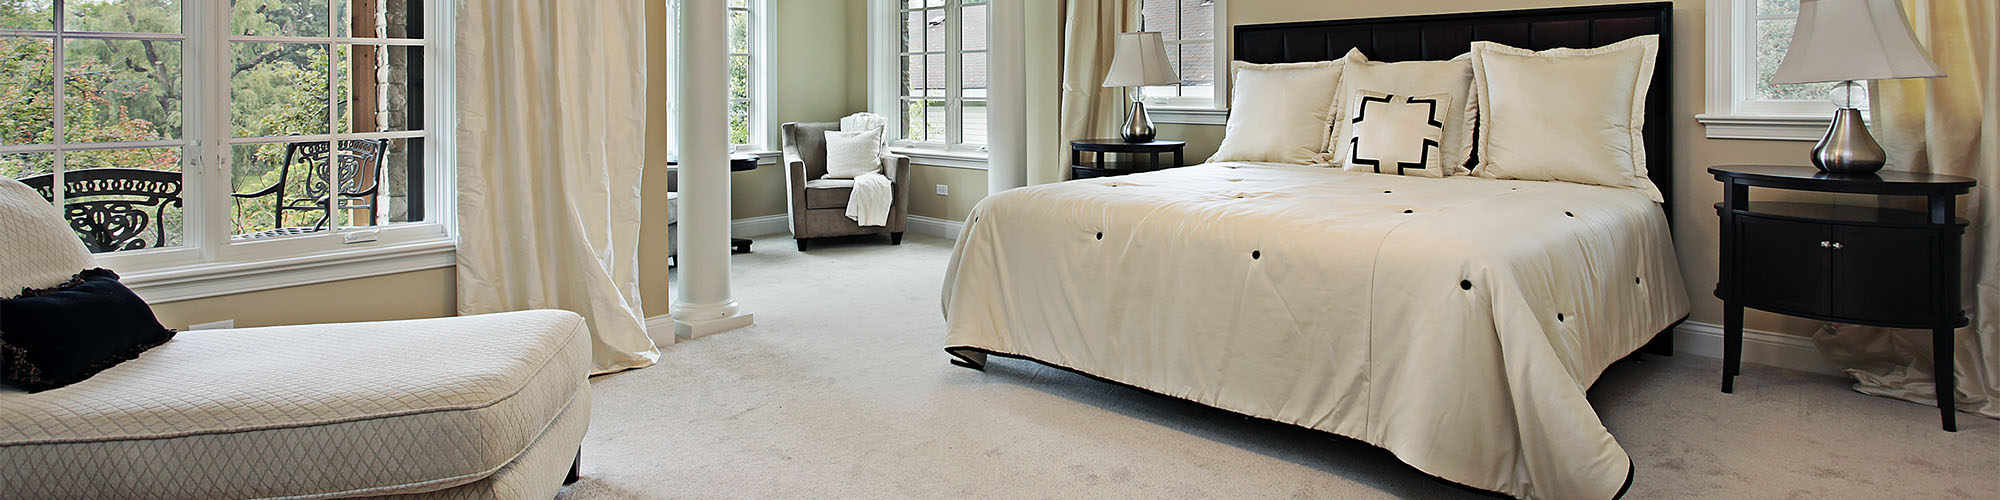 Carpet Installation   Cary, NC   Contract Carpet Outlet